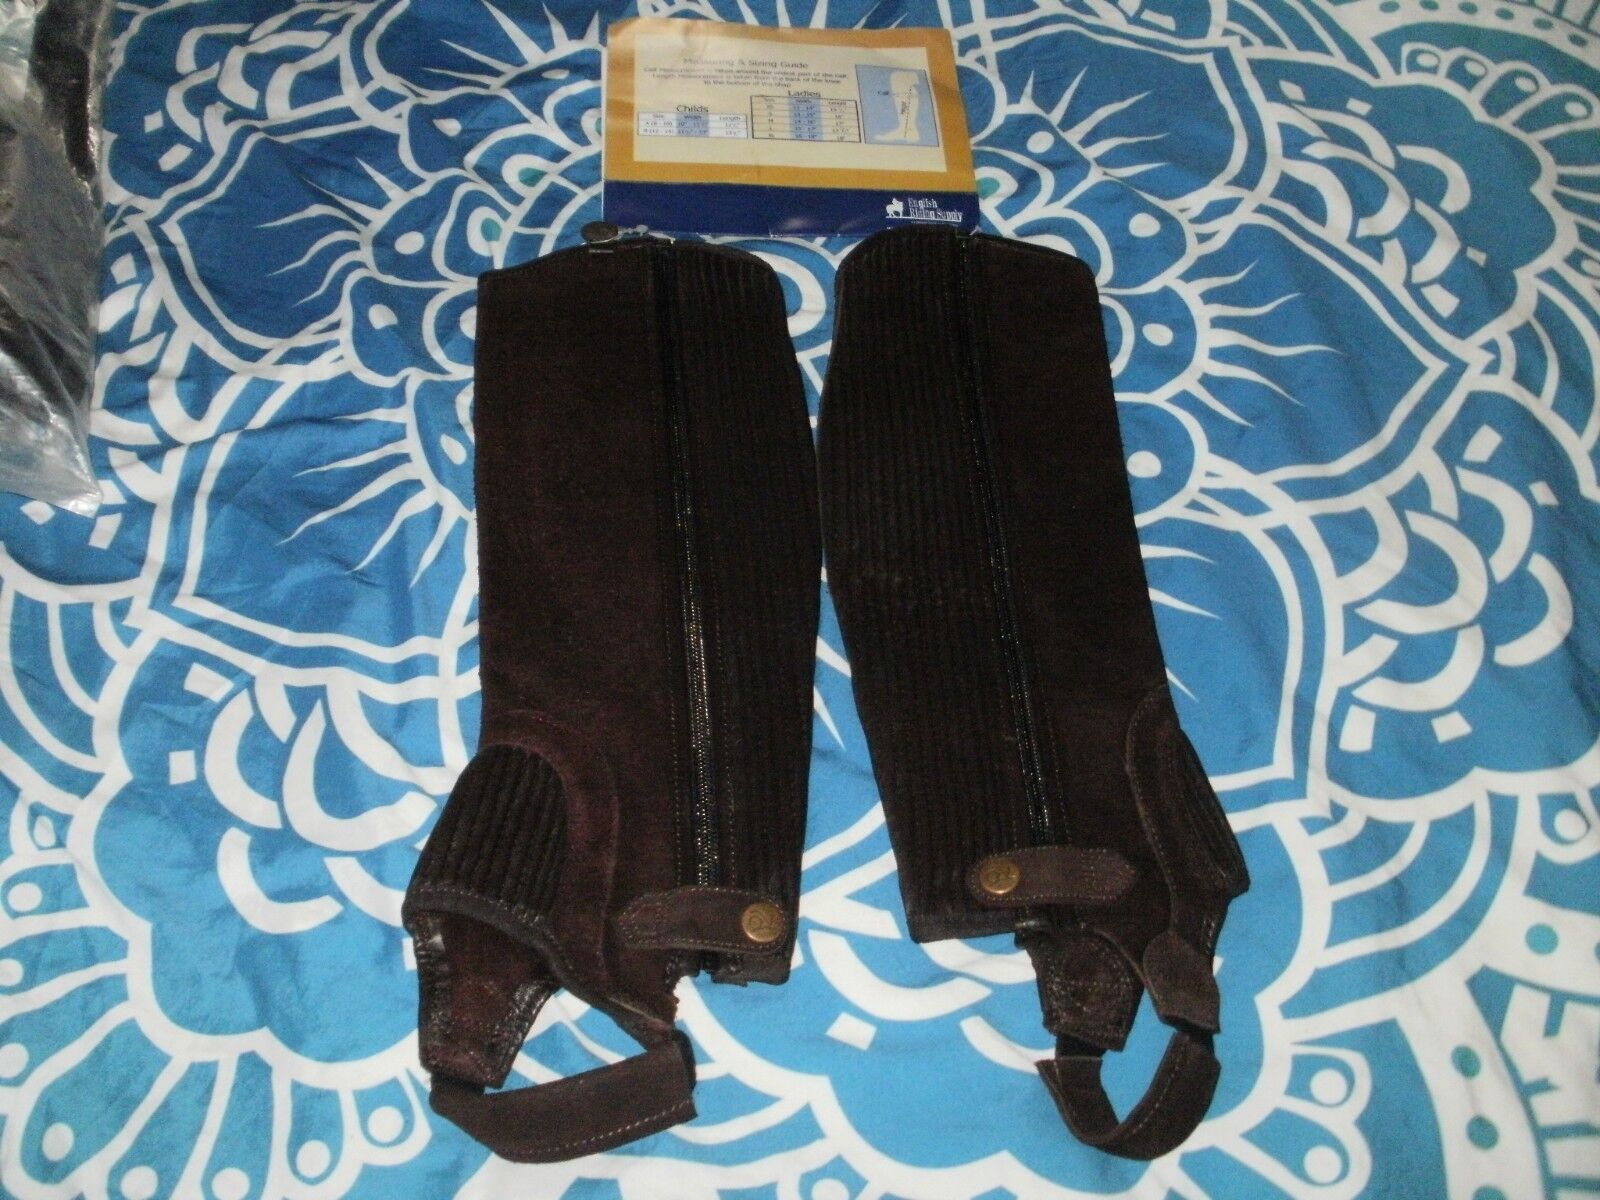 OVATION BROWN SUEDE HALF CHAPS XS 12-14 X 15.5 HEIGHT NEW